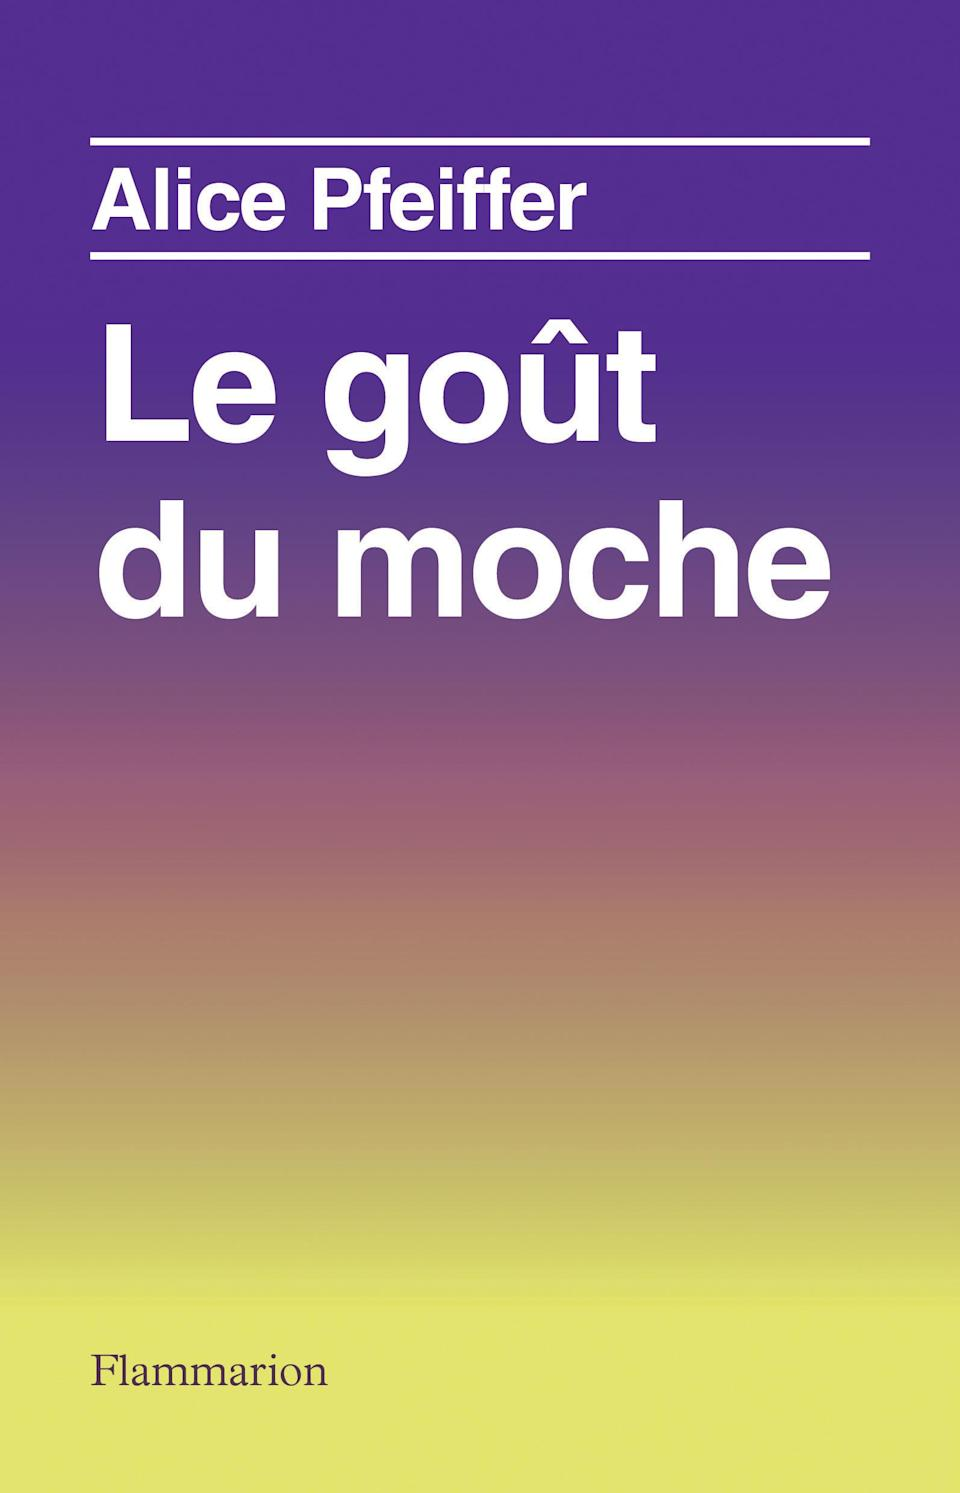 """""""Le goût du moche"""" by Alice Pfeiffer from Editions Flammarion"""